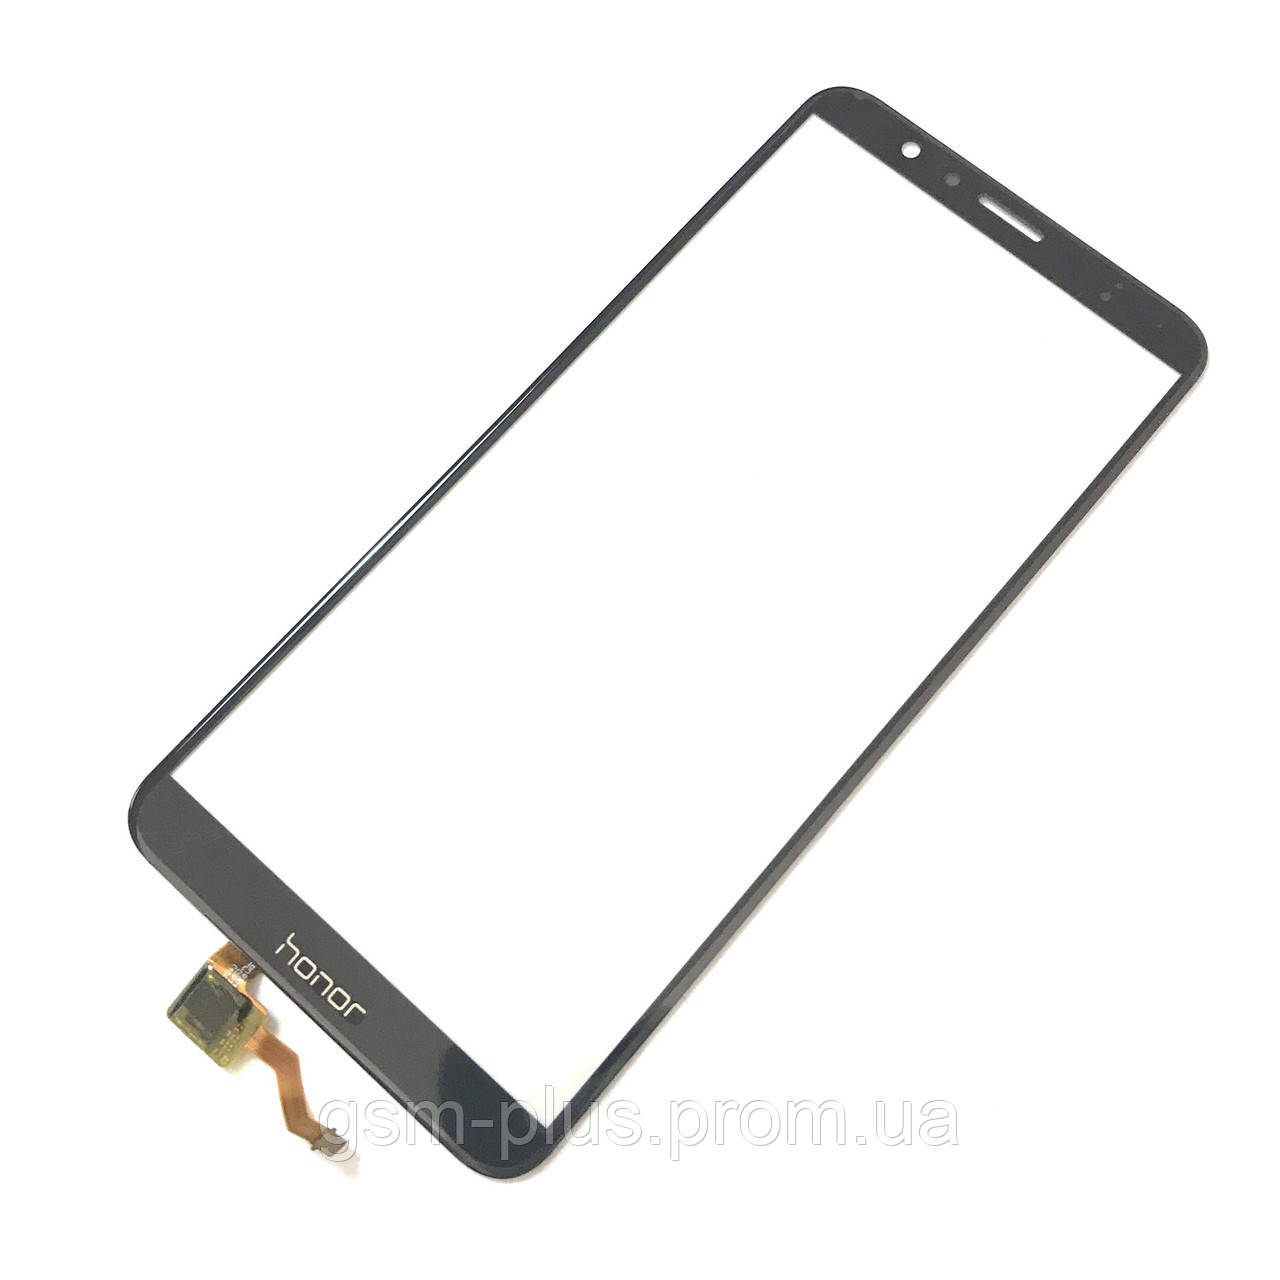 Тачскрин Huawei Honor 7x (BND-L21C10) Black